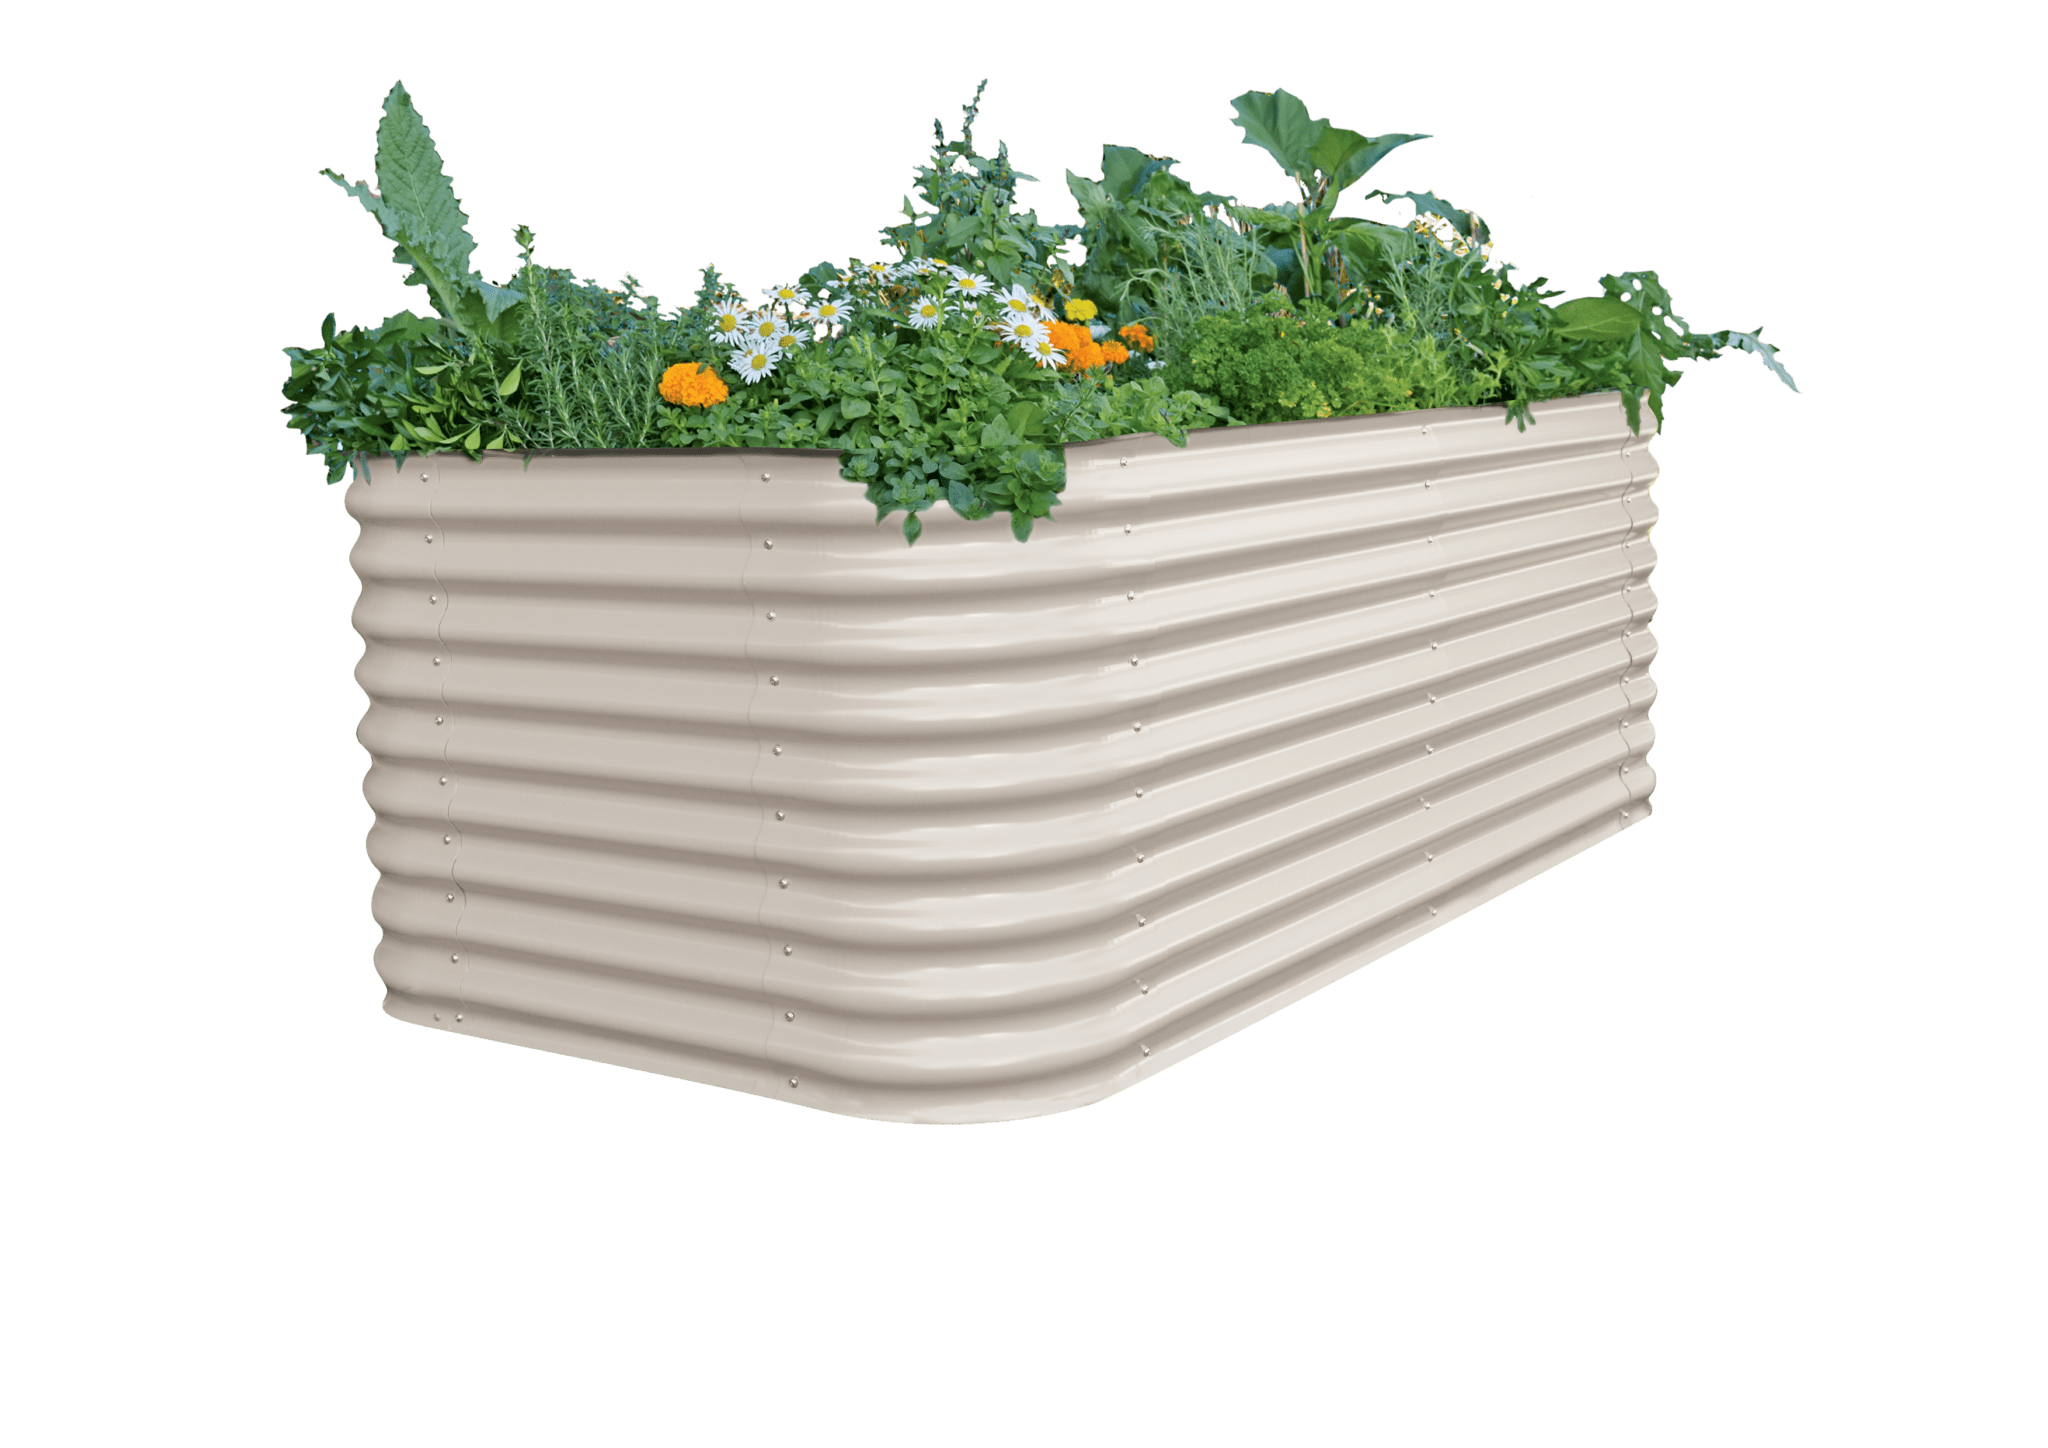 Colorbond Raised Garden Beds Stratco Colorbond Raised Garden Beds Newcastle Garden Ftempo